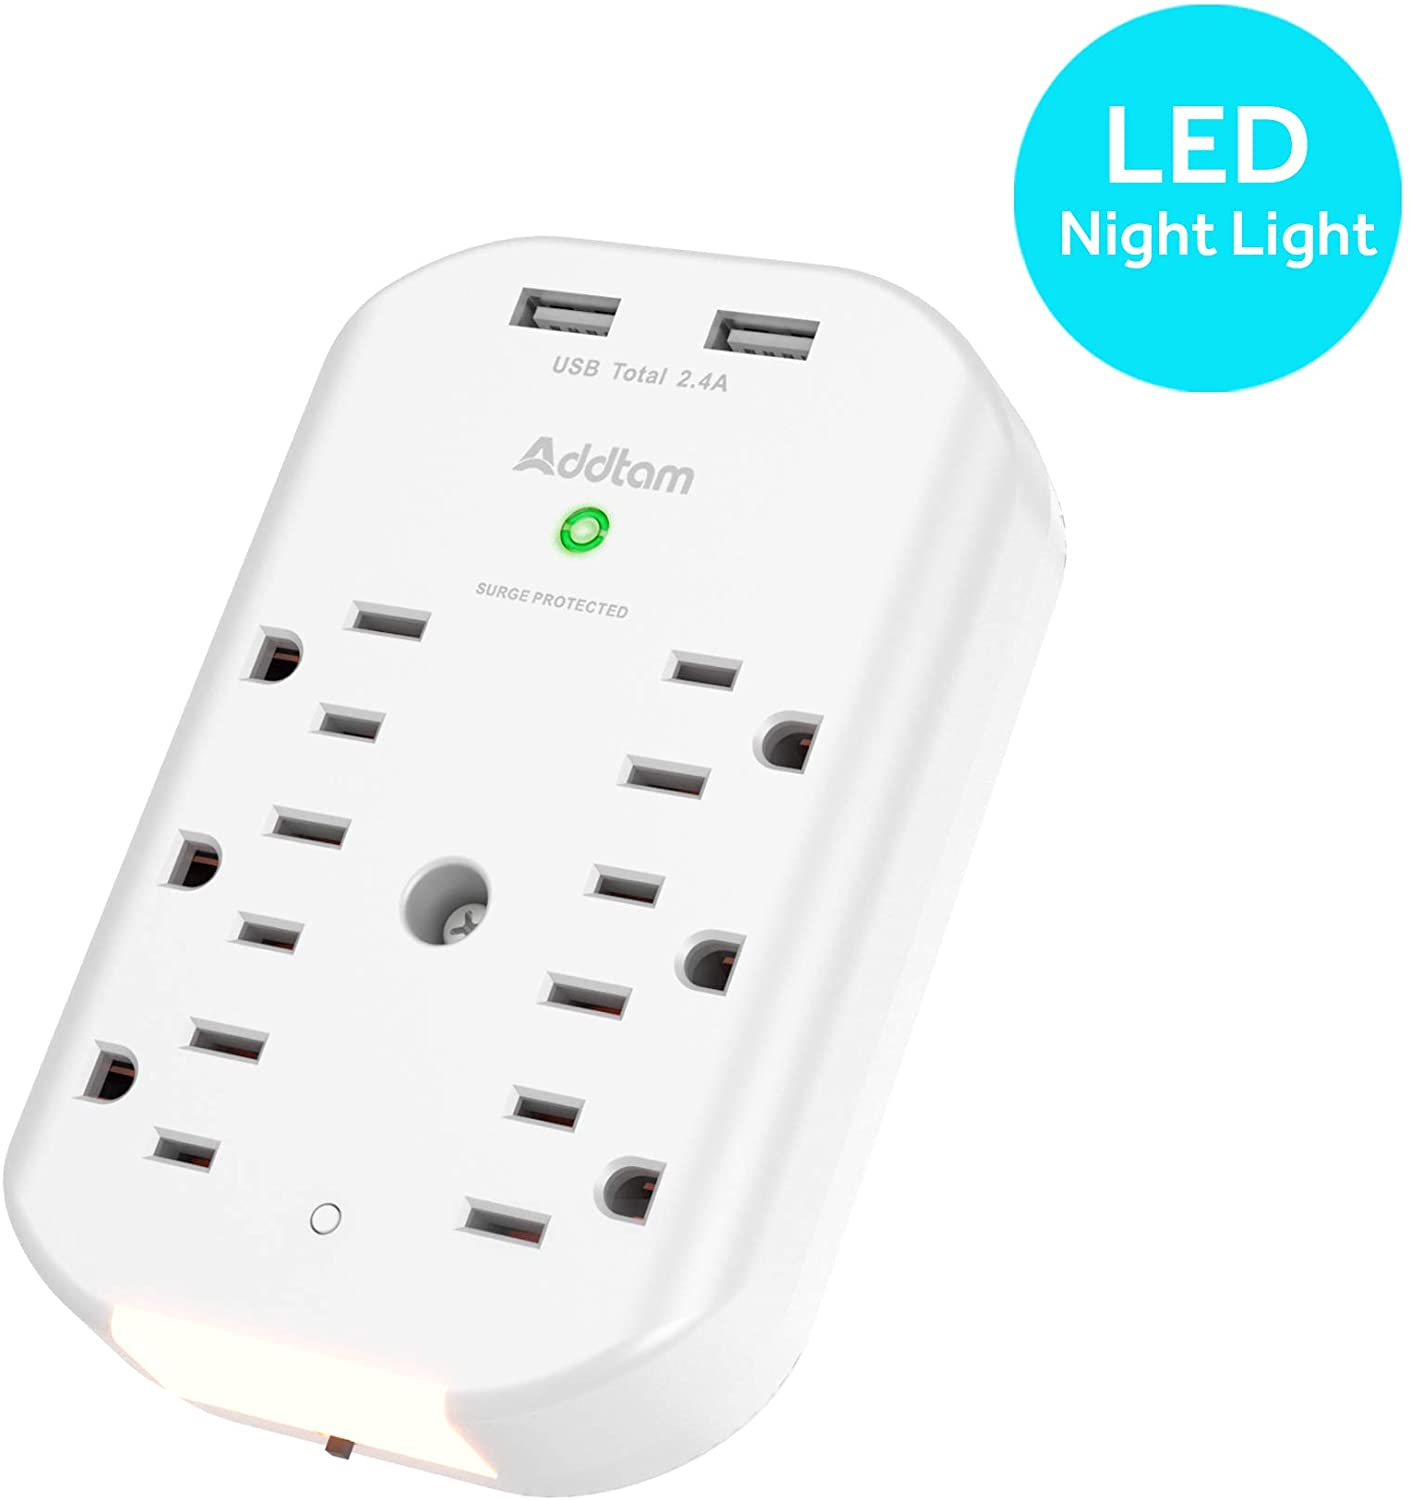 ADDTAM 6 Outlet Surge Protector, Wall Outlet Extender with Sensor Night Light, Multi Plug Outlet Wall Adapter Power Strip with 2 USB Charging Ports (2.4A) for Home, Travel, Office, Hotel, ETL Approved